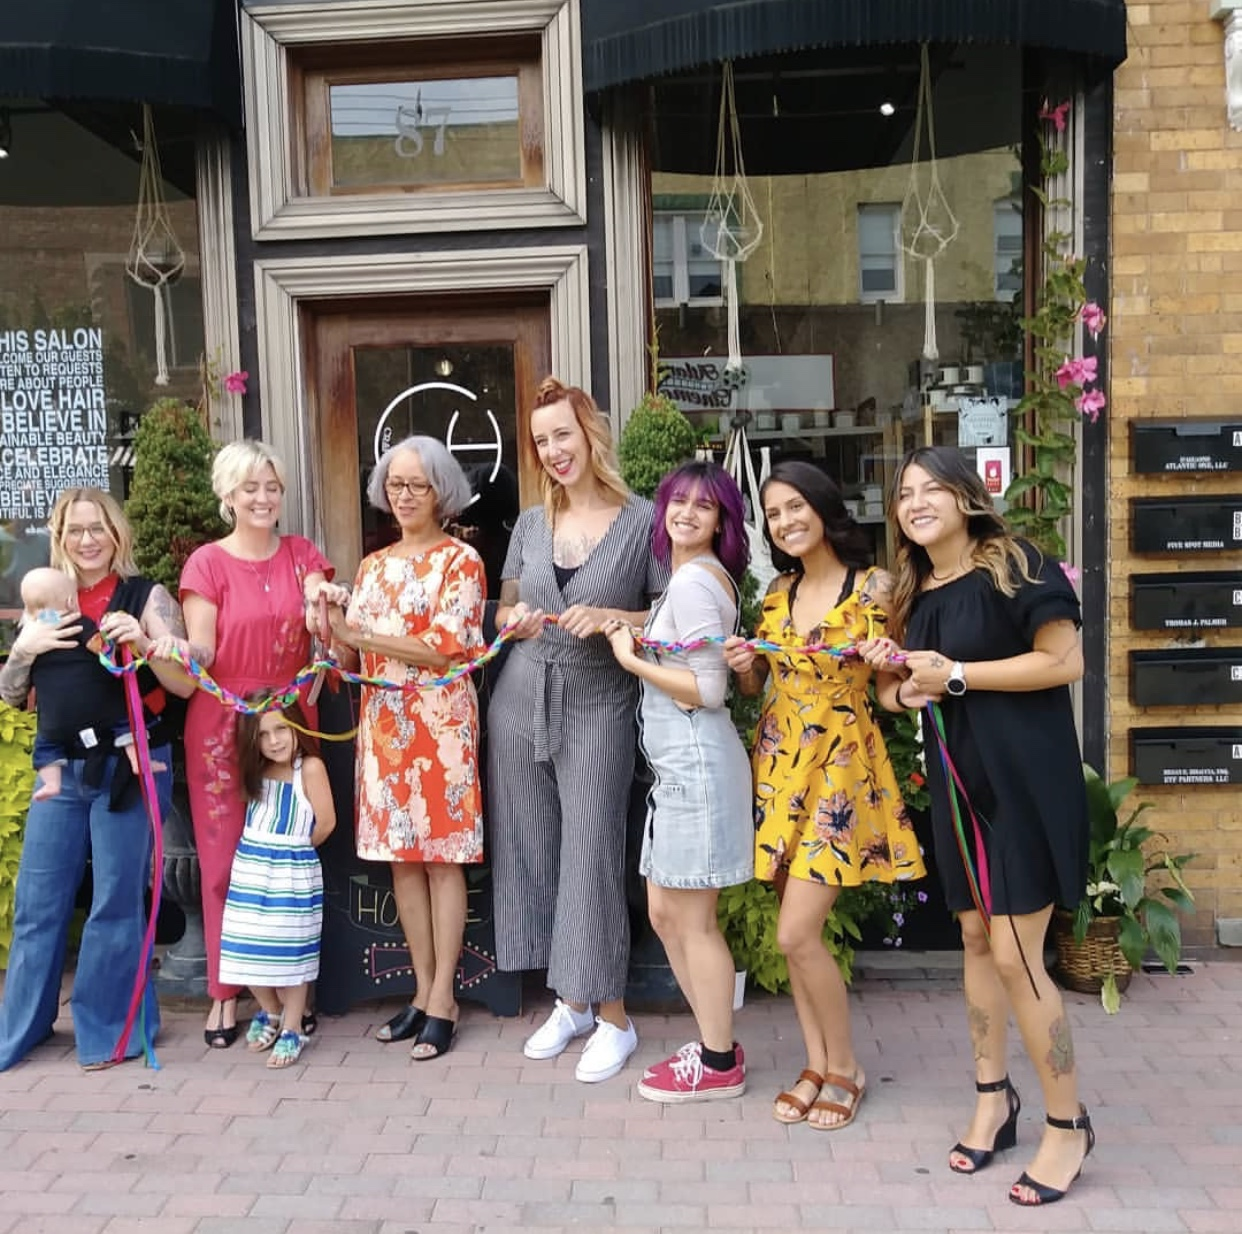 Craft House Salon Grand Opening Party